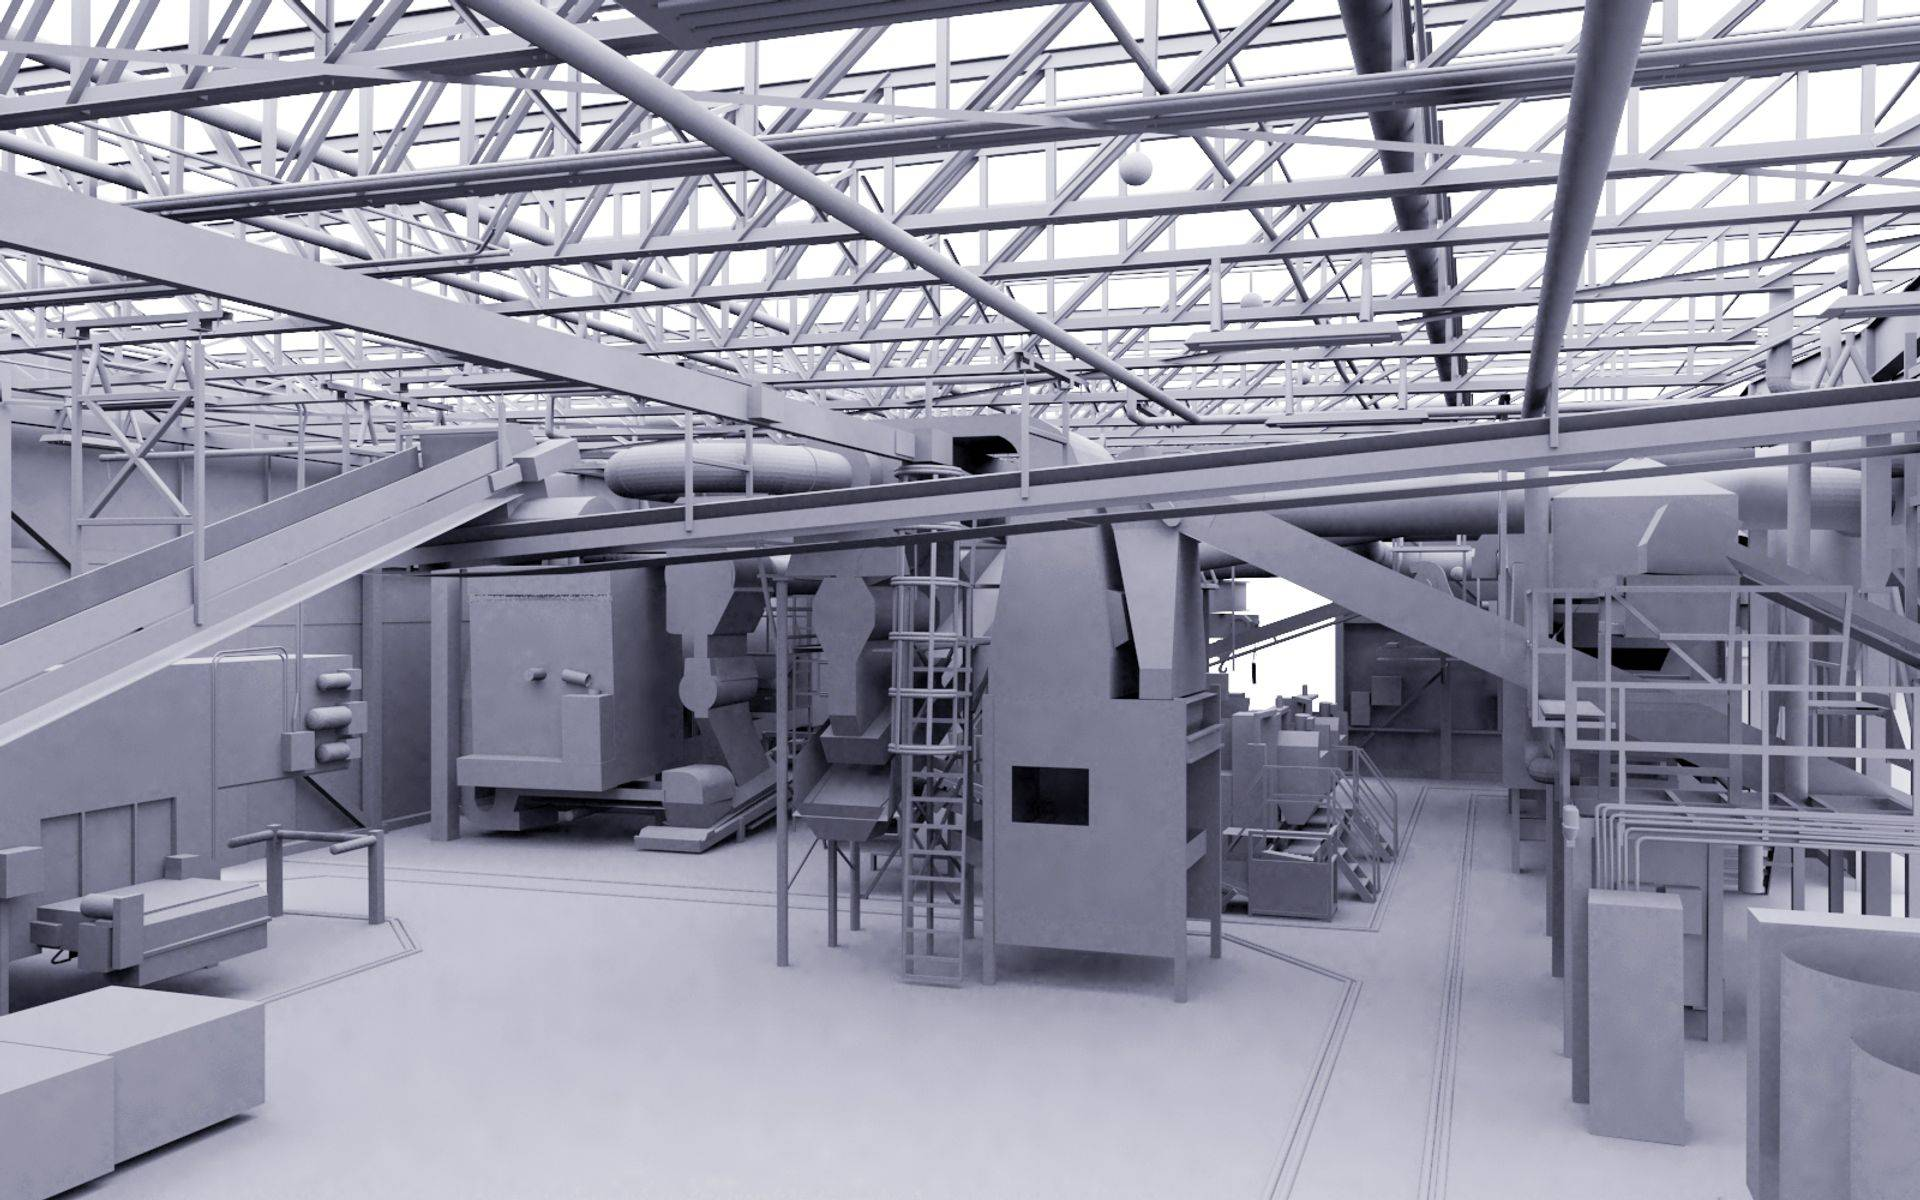 Main Manufacturing Plant 3D rendering from 3D scanner